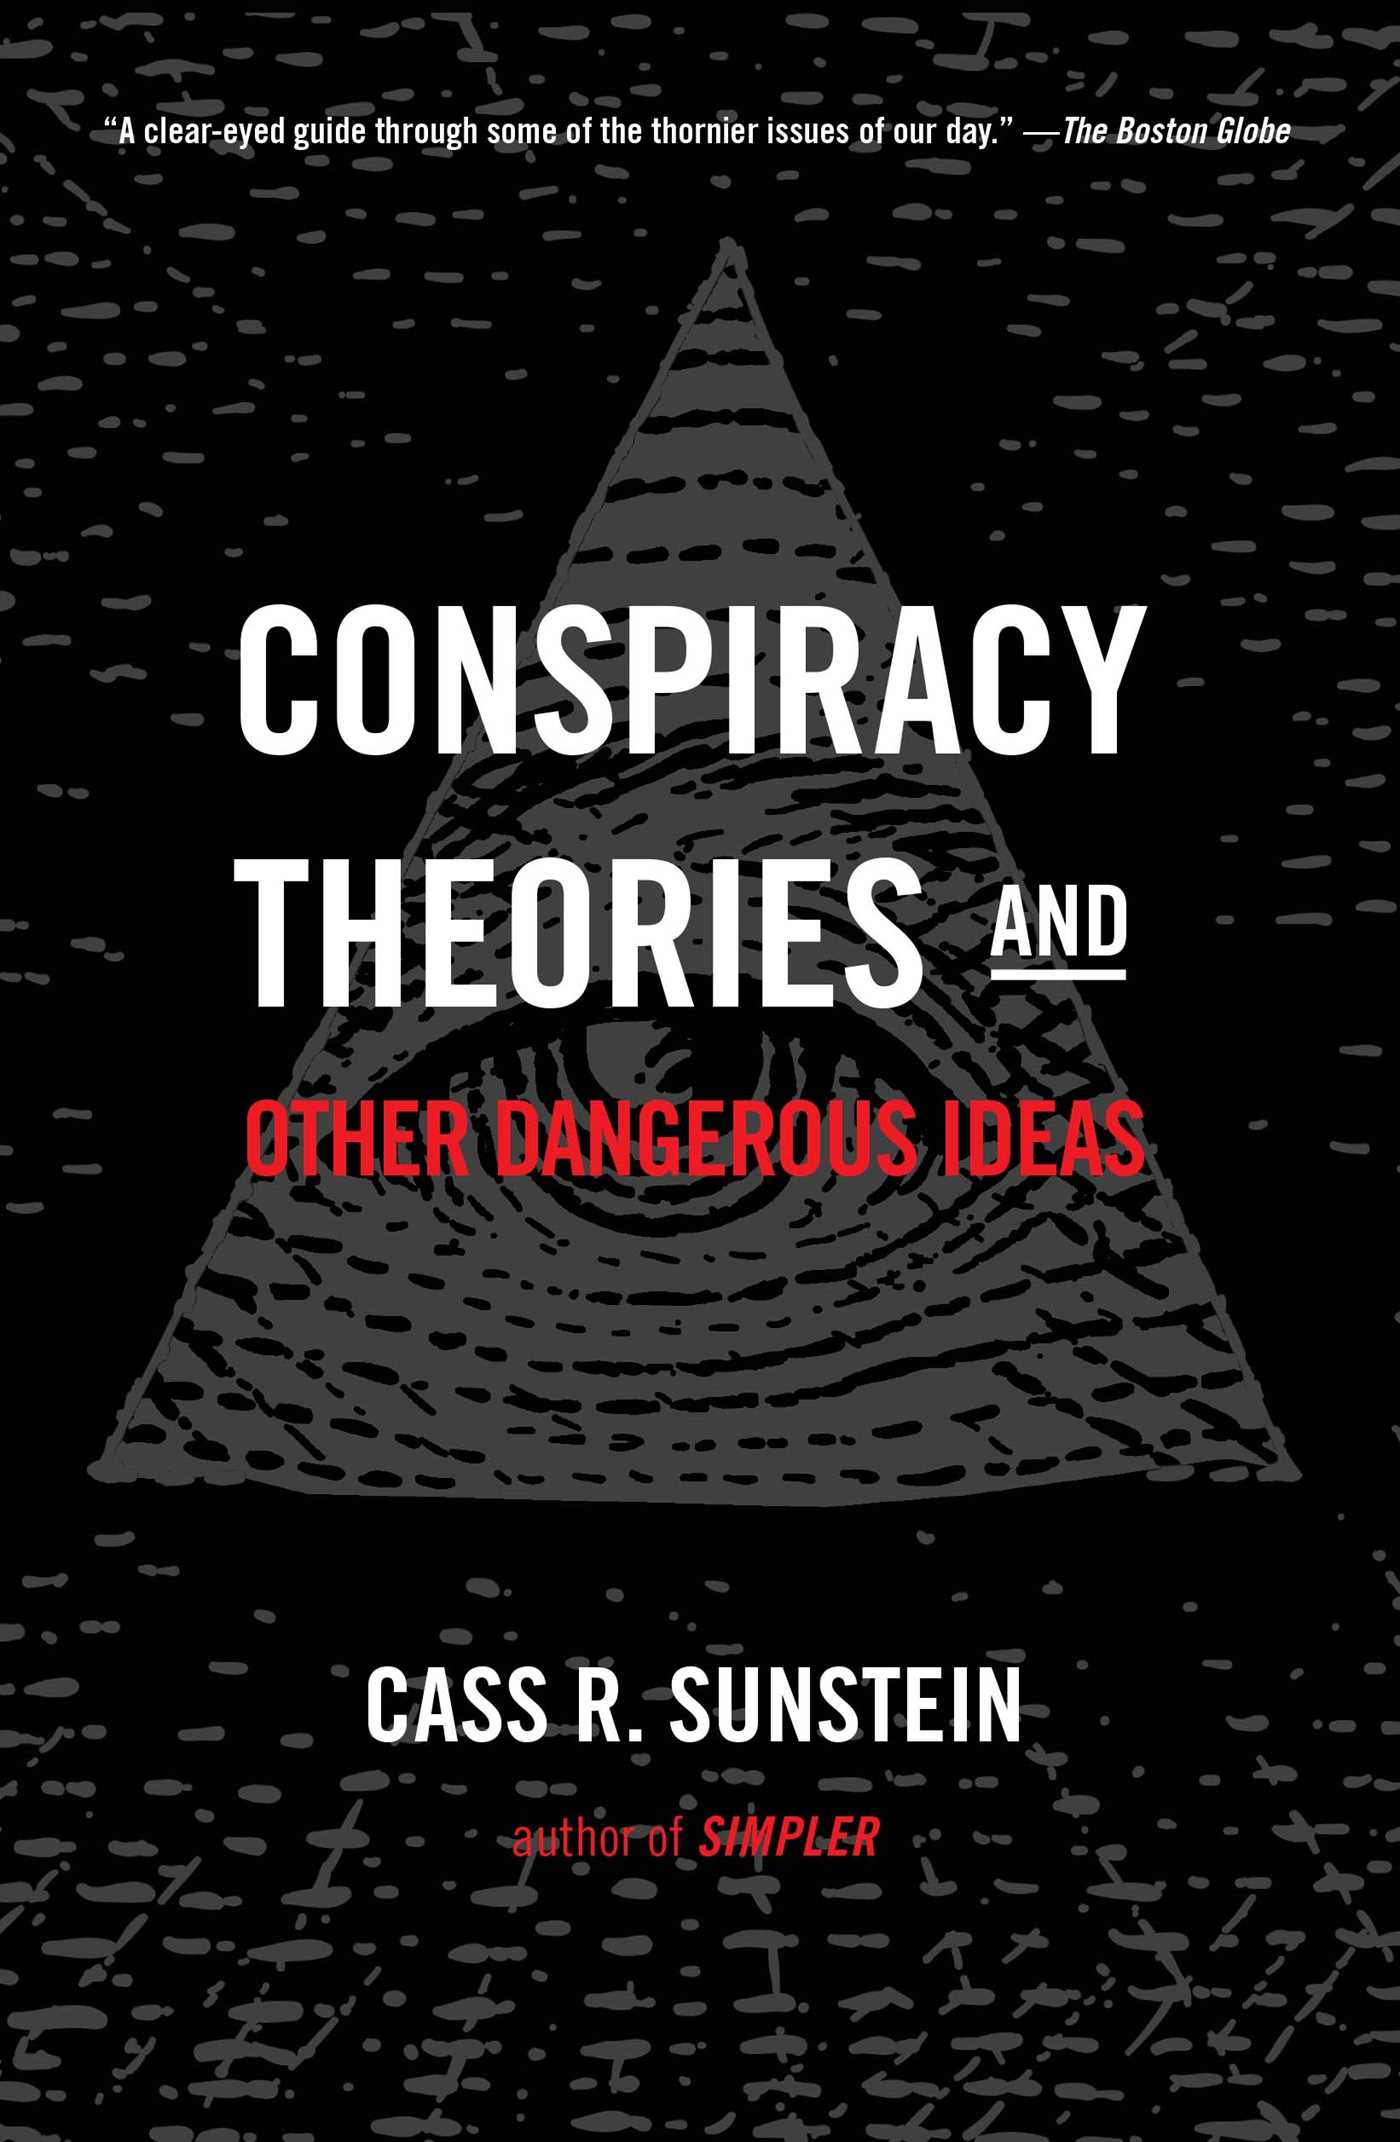 Conspiracy-theories-and-other-dangerous-ideas-9781476726649_hr